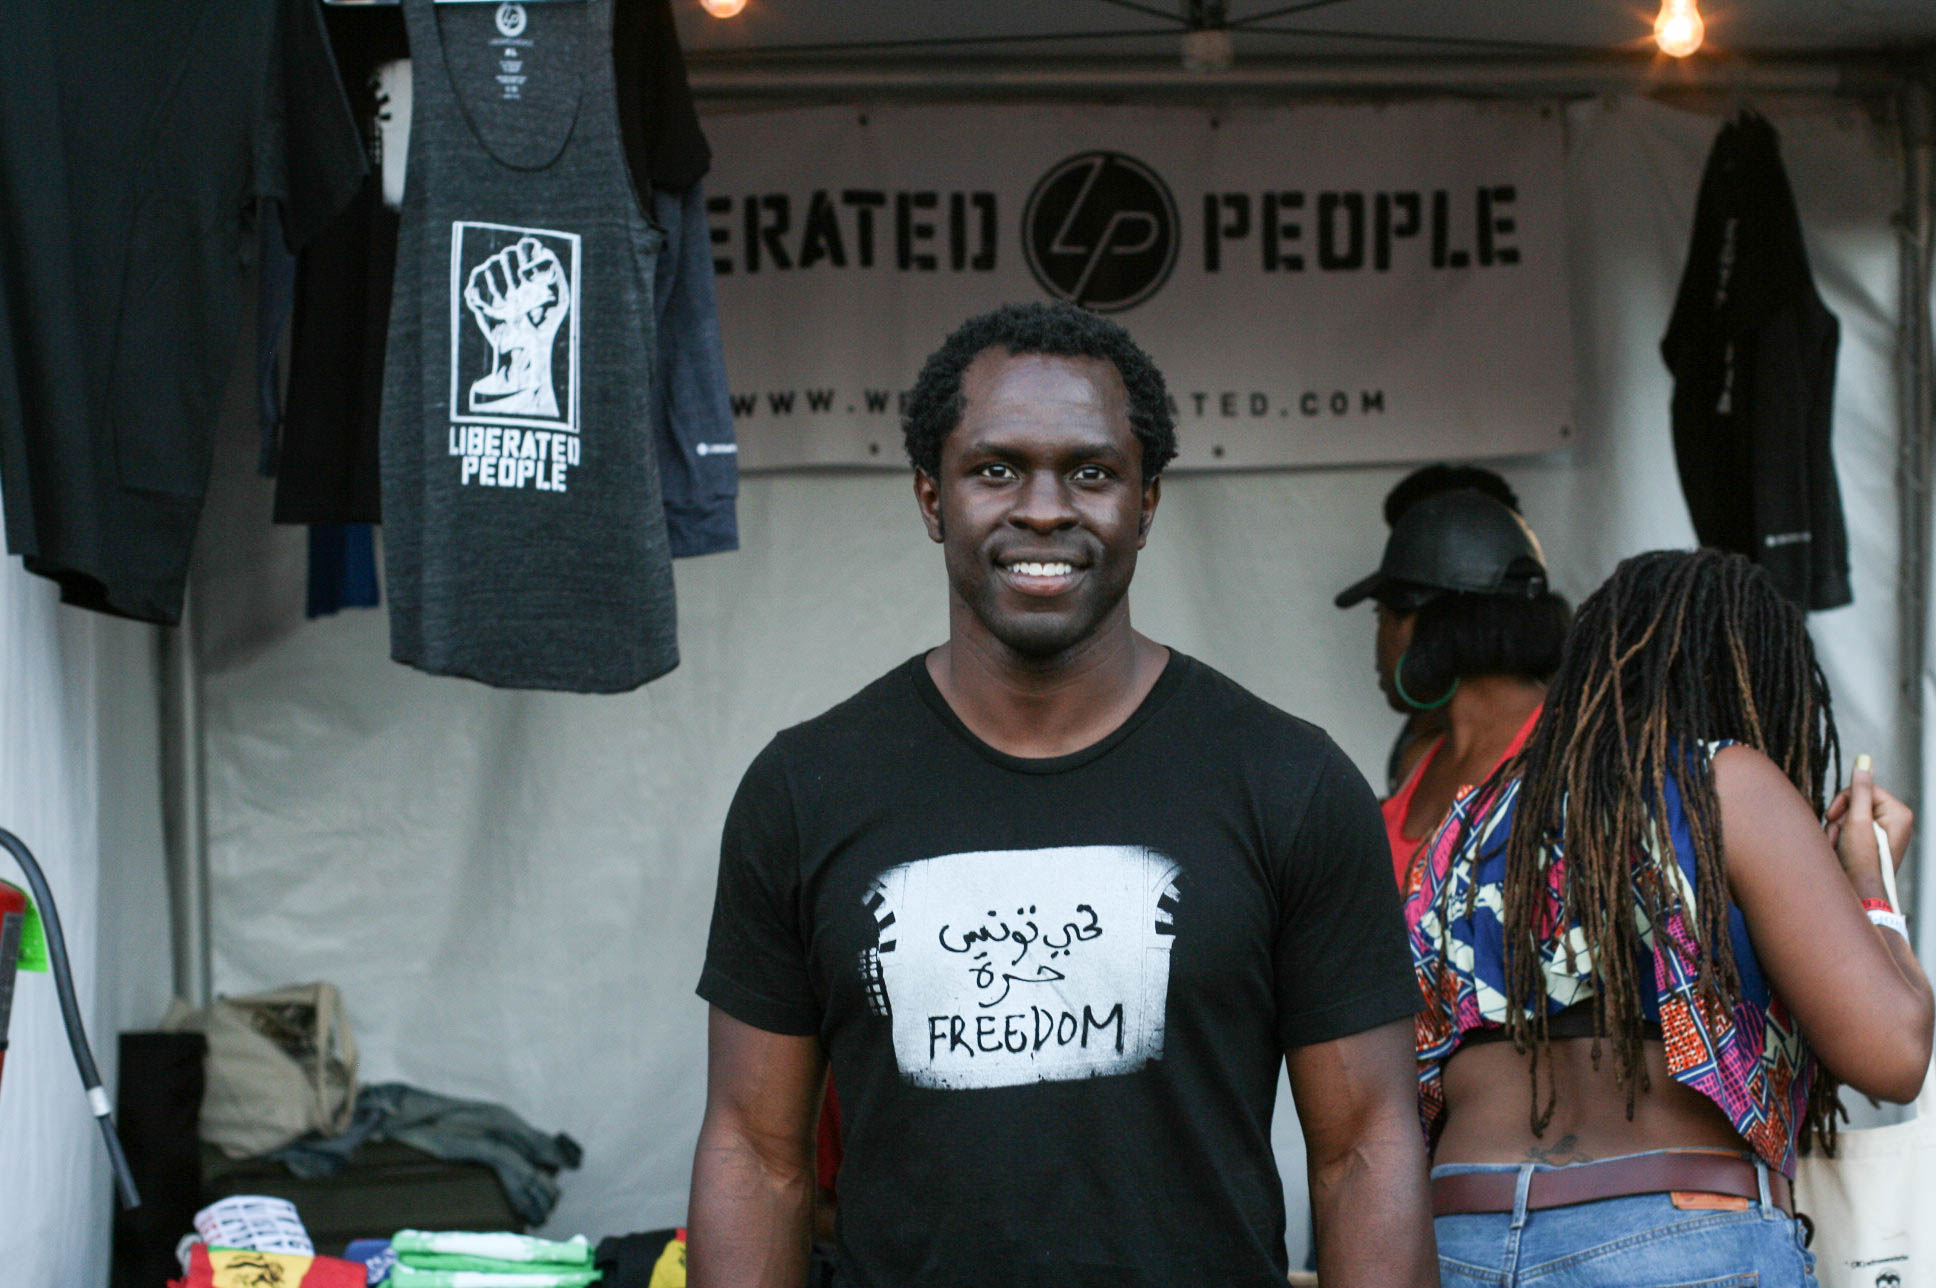 @gbengaakinnagbe at his @liberatedpeole / @enitan_vintage stand at #afropunkfest .